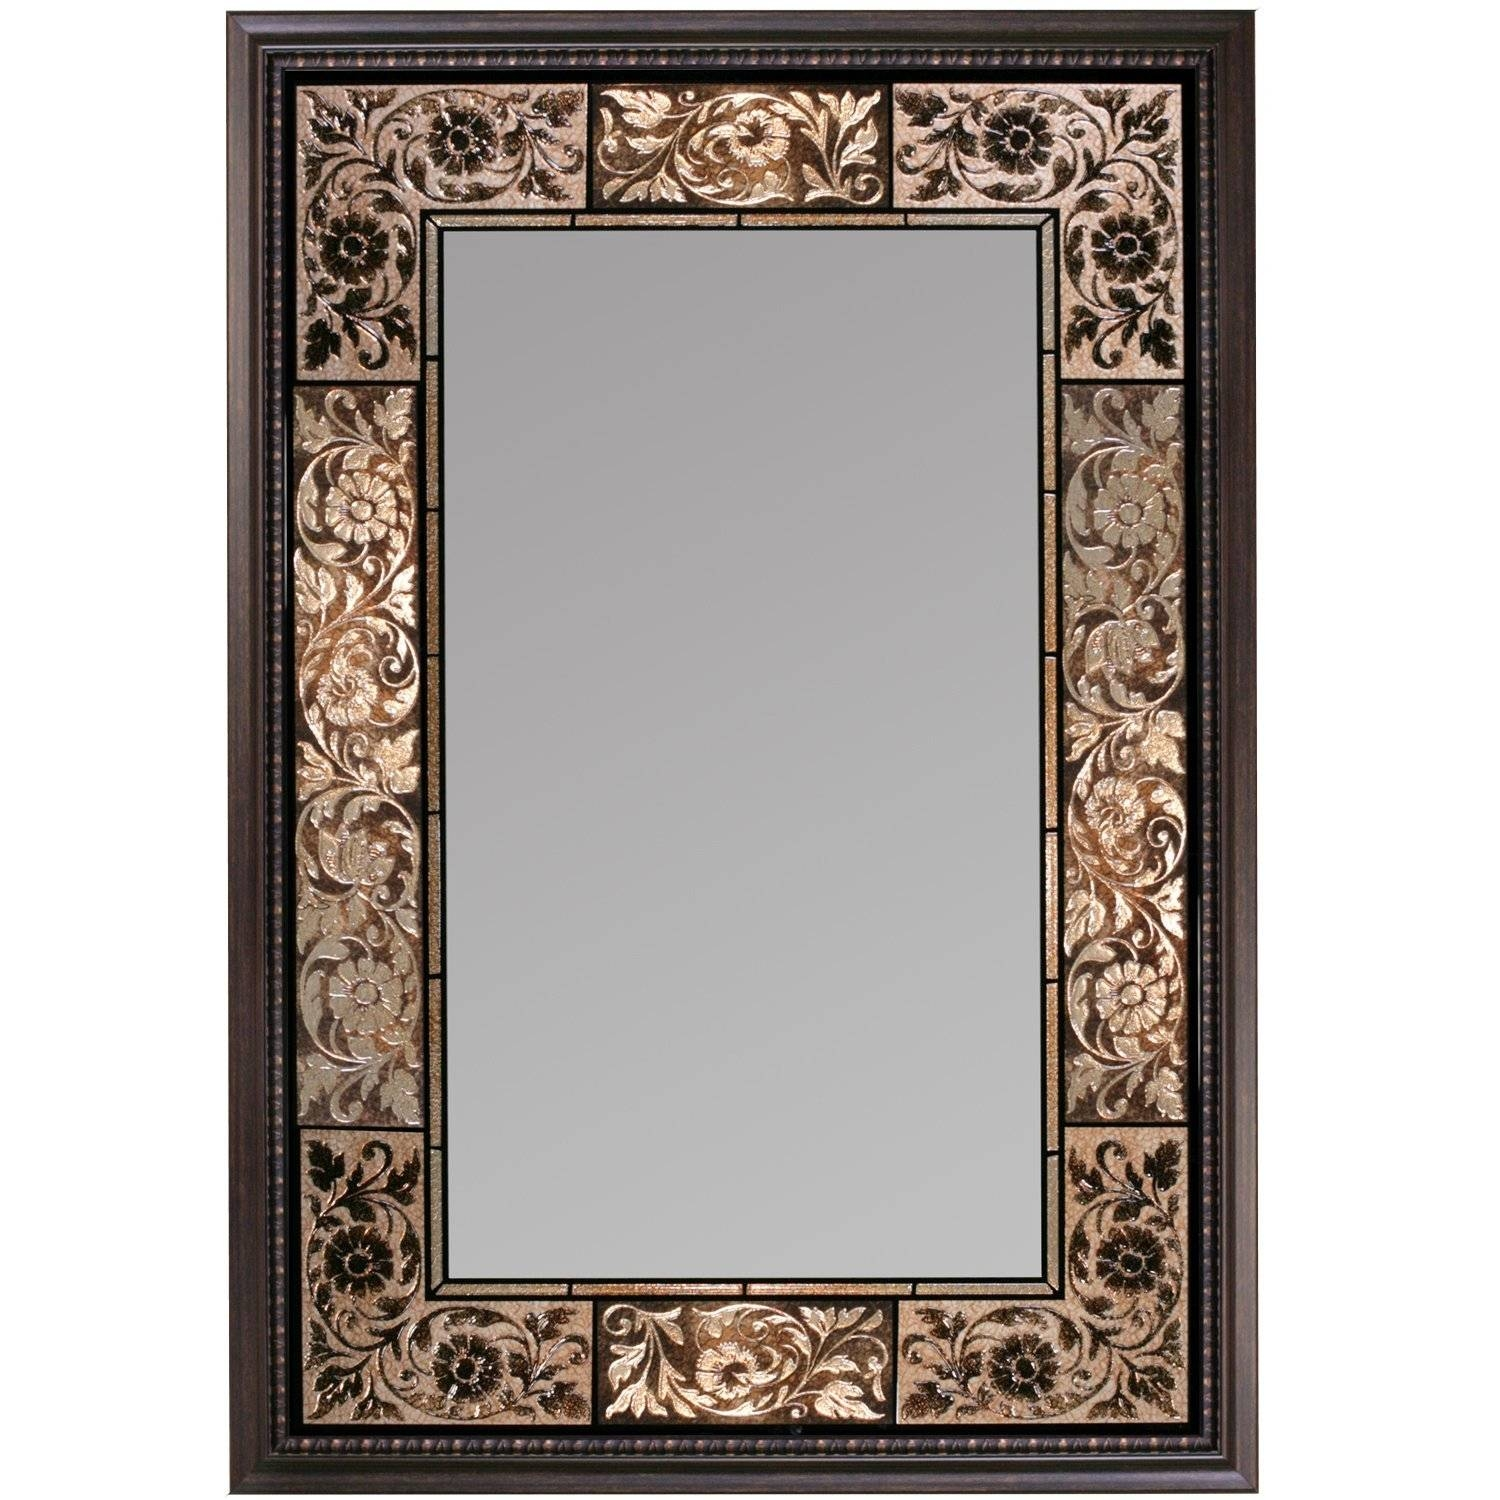 Cool Wall Mirrors For Bathrooms Contemporary Wall Of Mirrors intended for Unusual Wall Mirrors (Image 8 of 25)